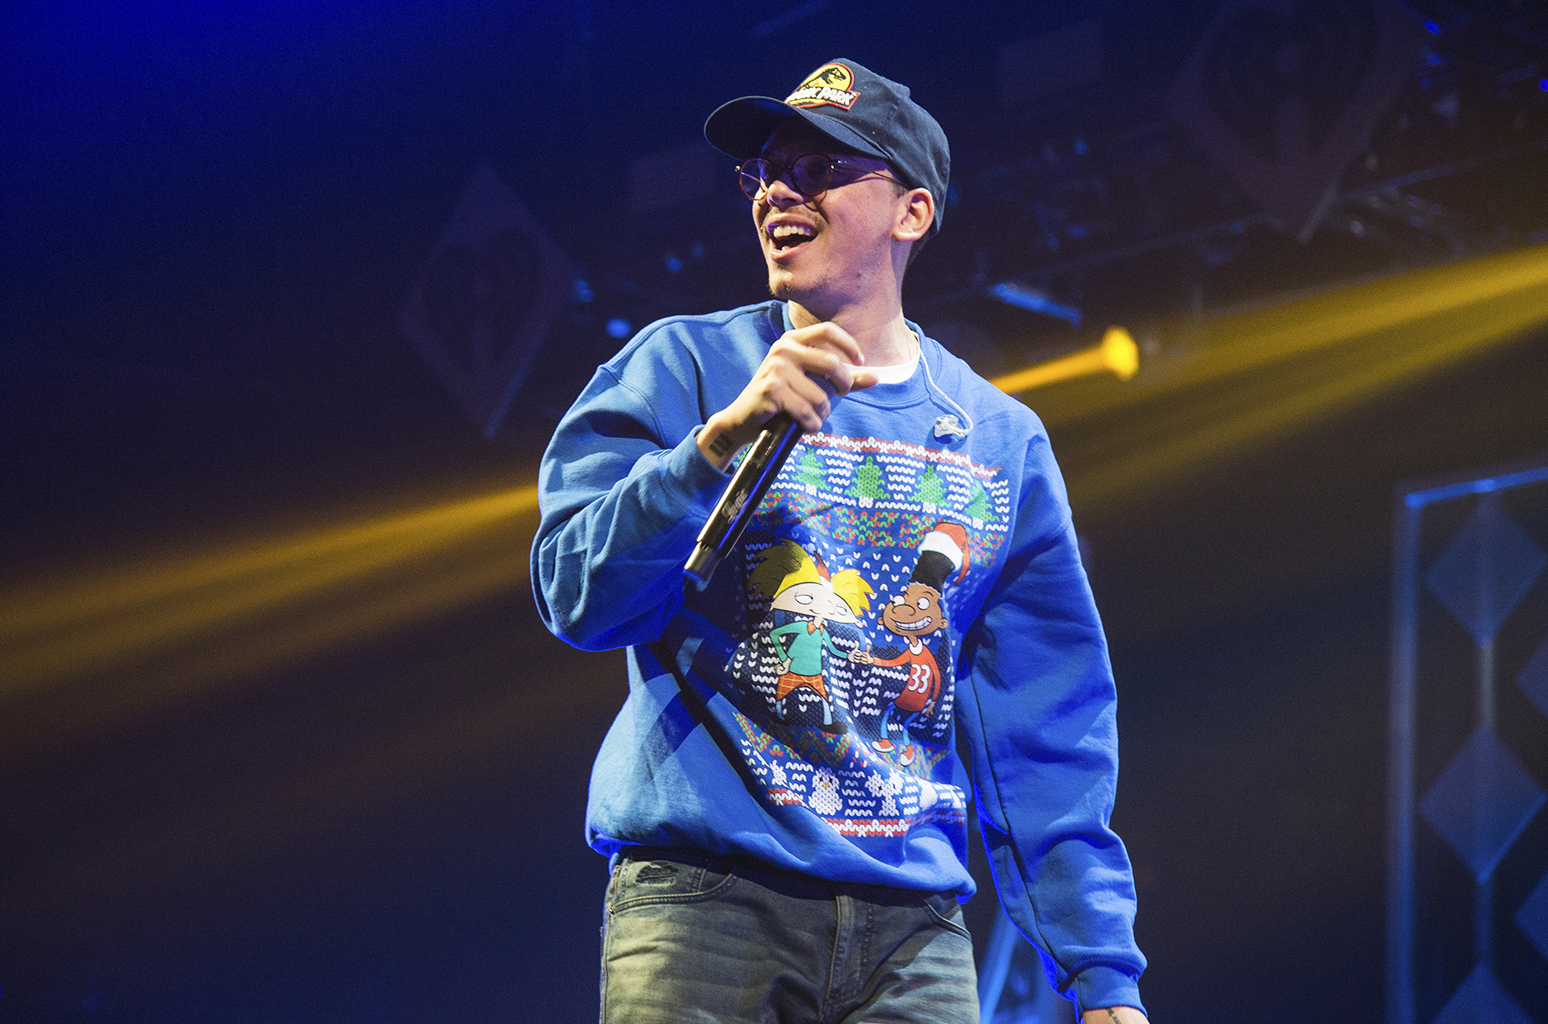 Logic at Red Rocks Amphitheater